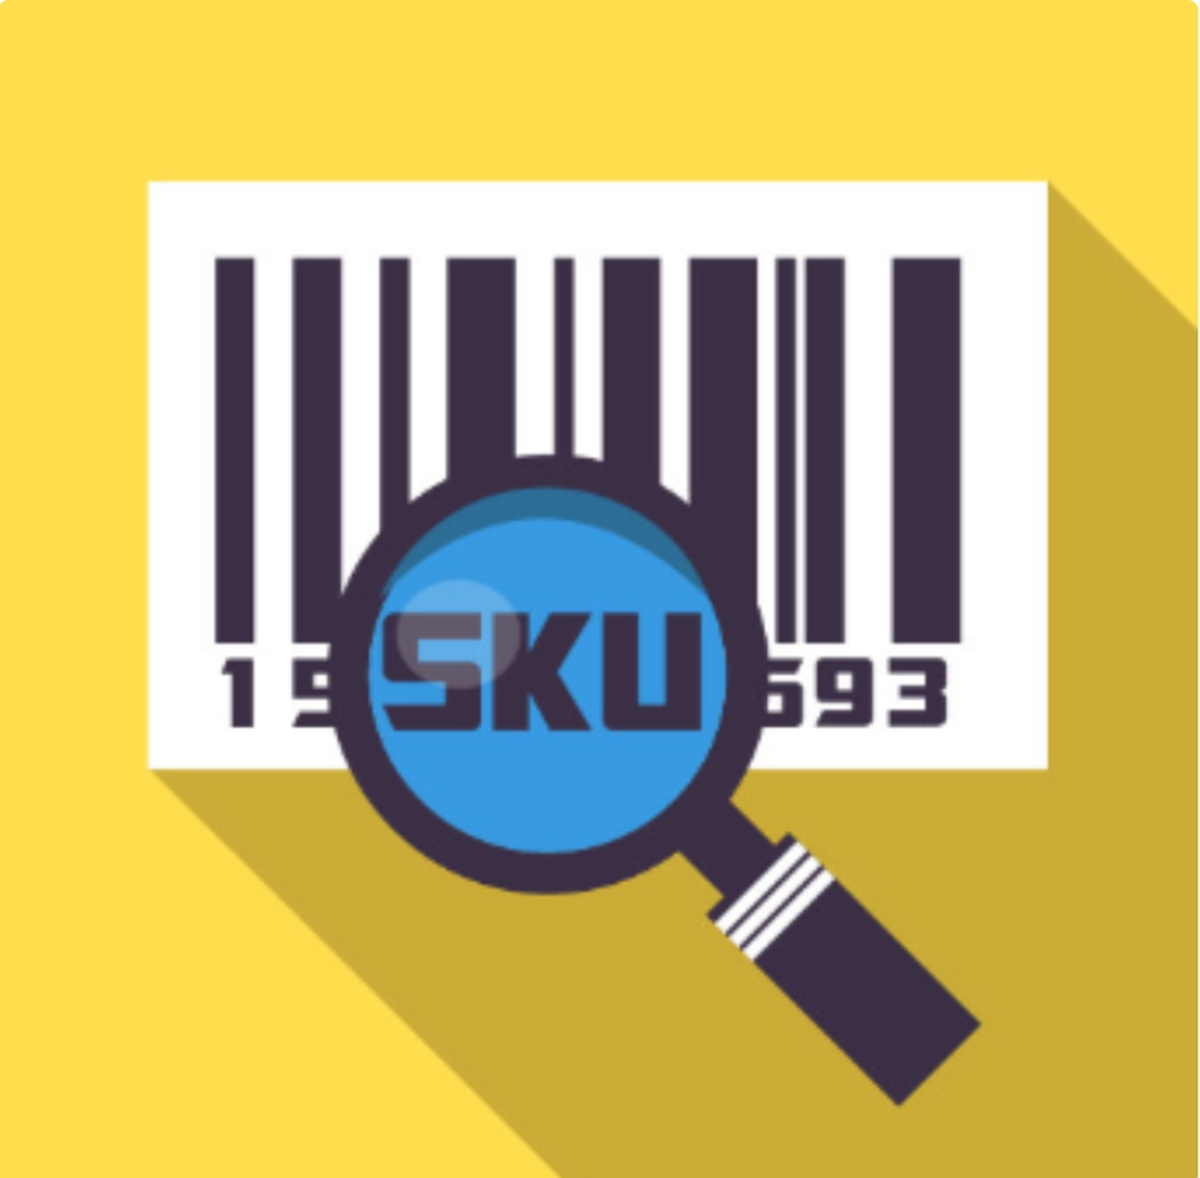 What's a SKU number?